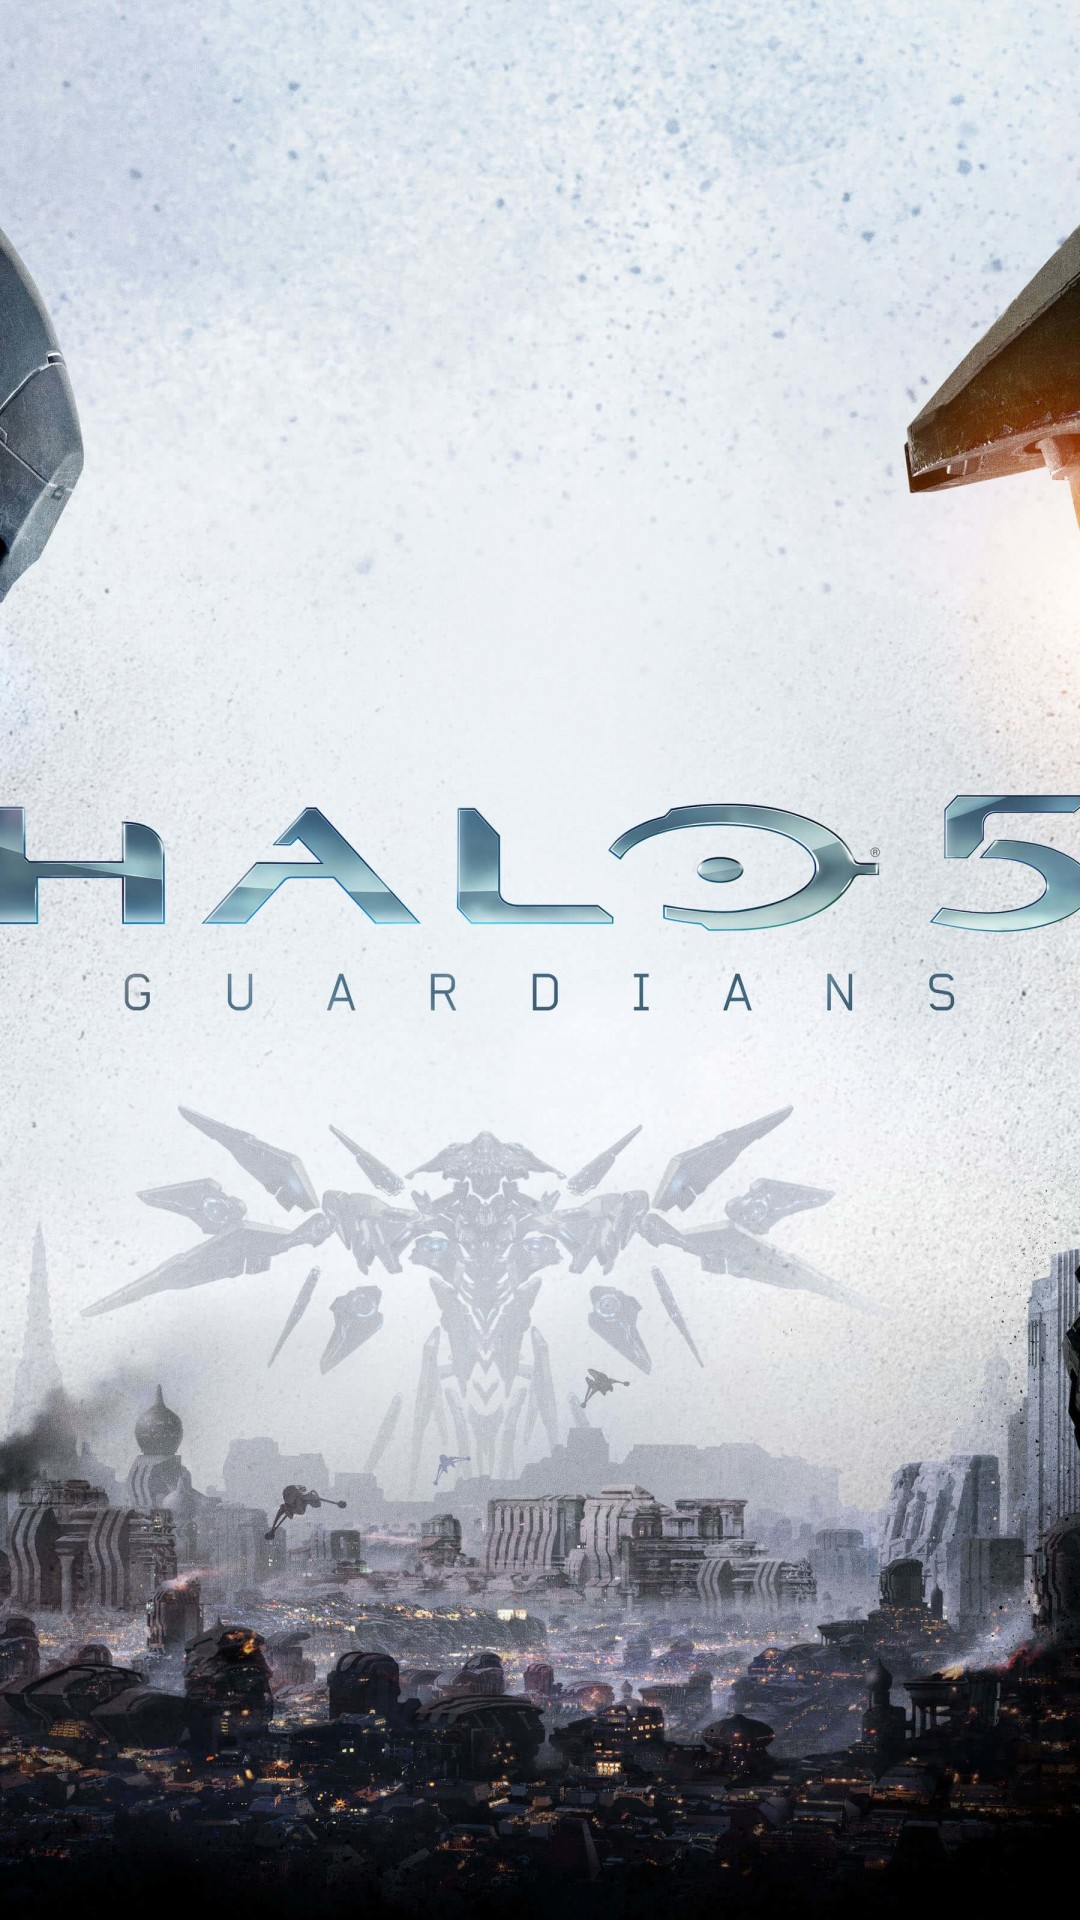 Halo 5: Guardians Wallpaper for Motorola Moto X